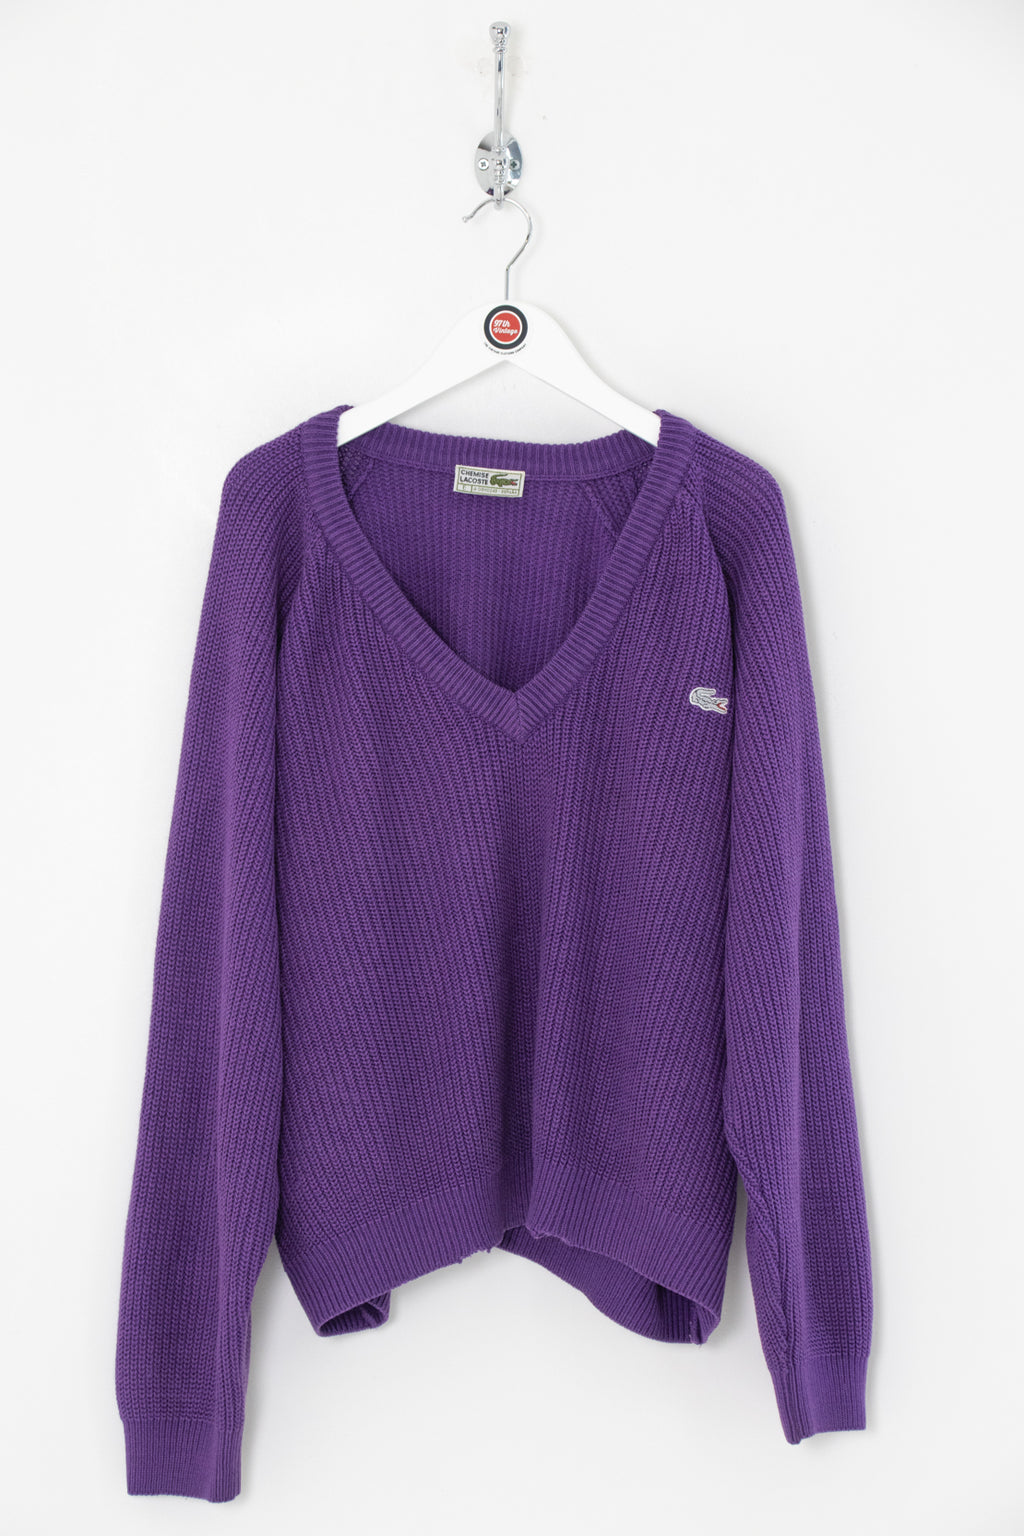 Women's Lacoste Jumper (XL)